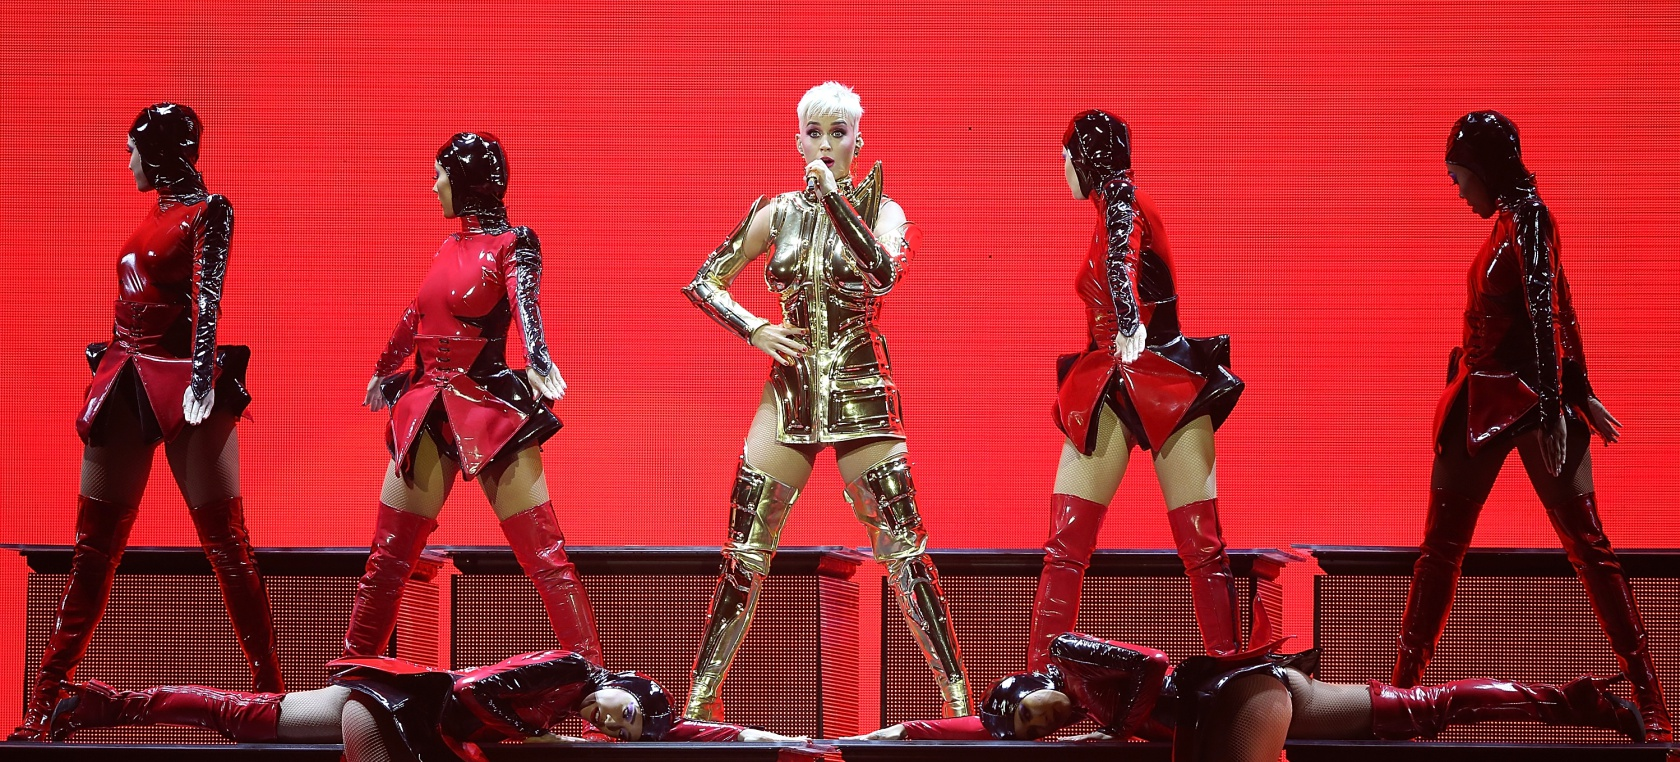 Katy Perry cierra su etapa Witness